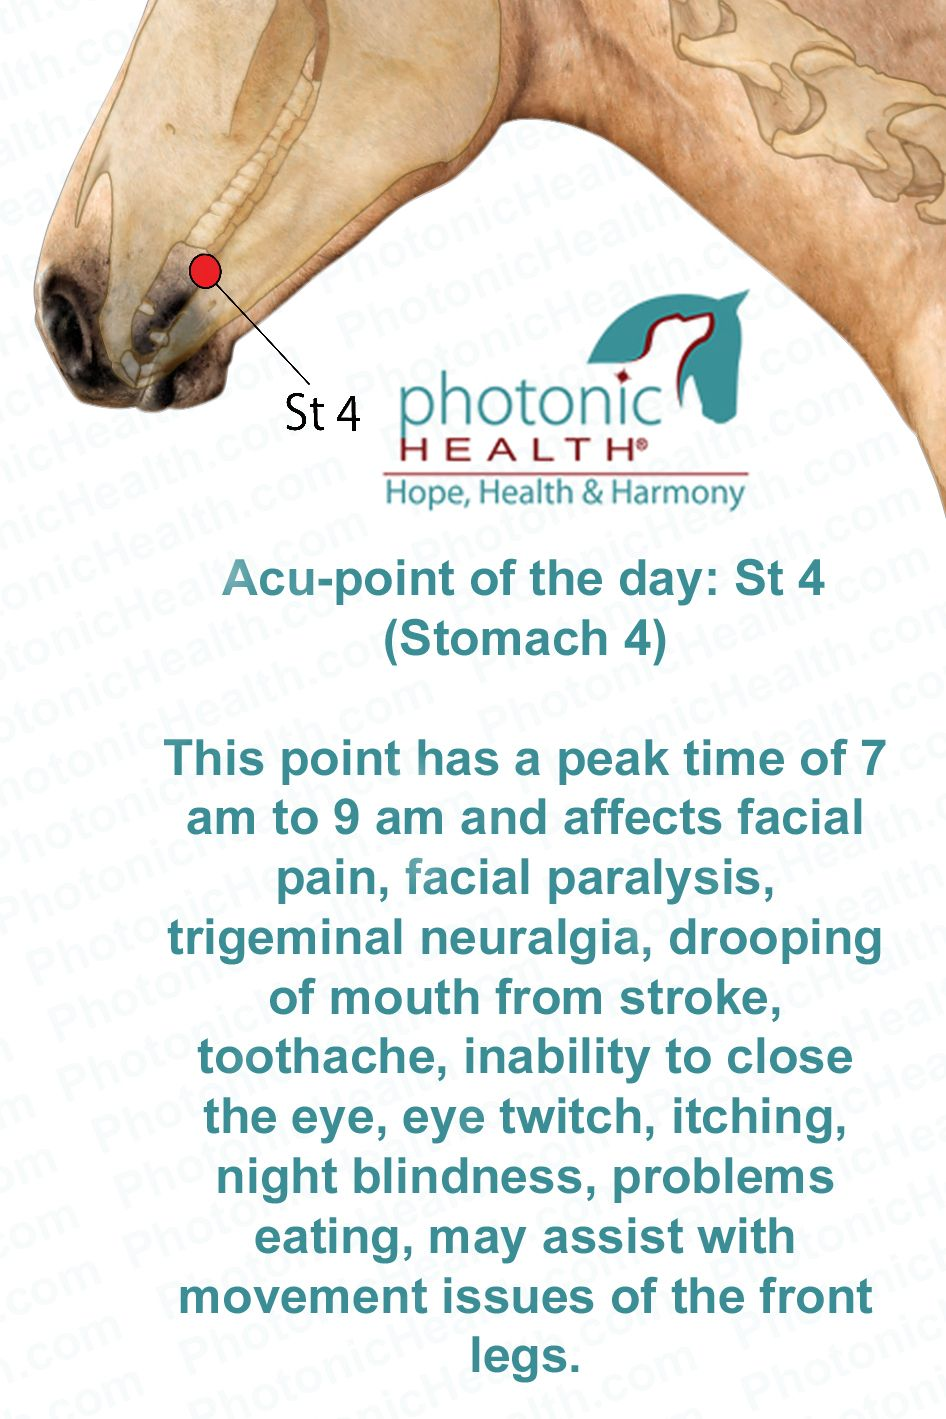 Acu-point of the day! Stomach 4 Want to learn more? Click here